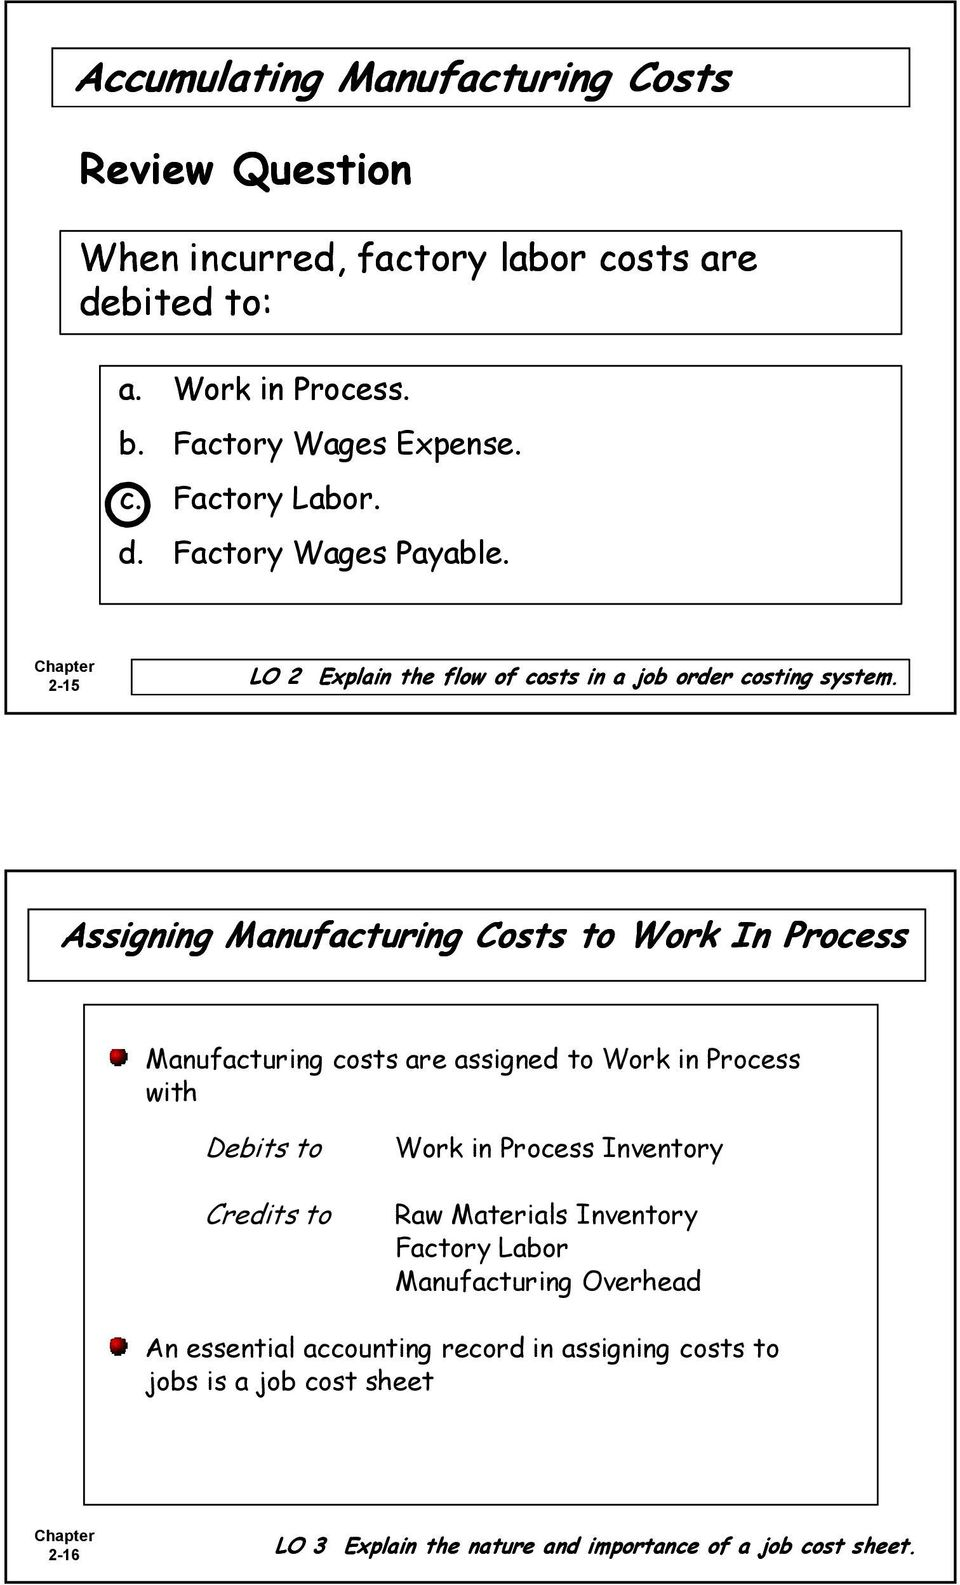 Assigning Manufacturing Costs to Work In Process Manufacturing costs are assigned to Work in Process with Debits to Credits to Work in